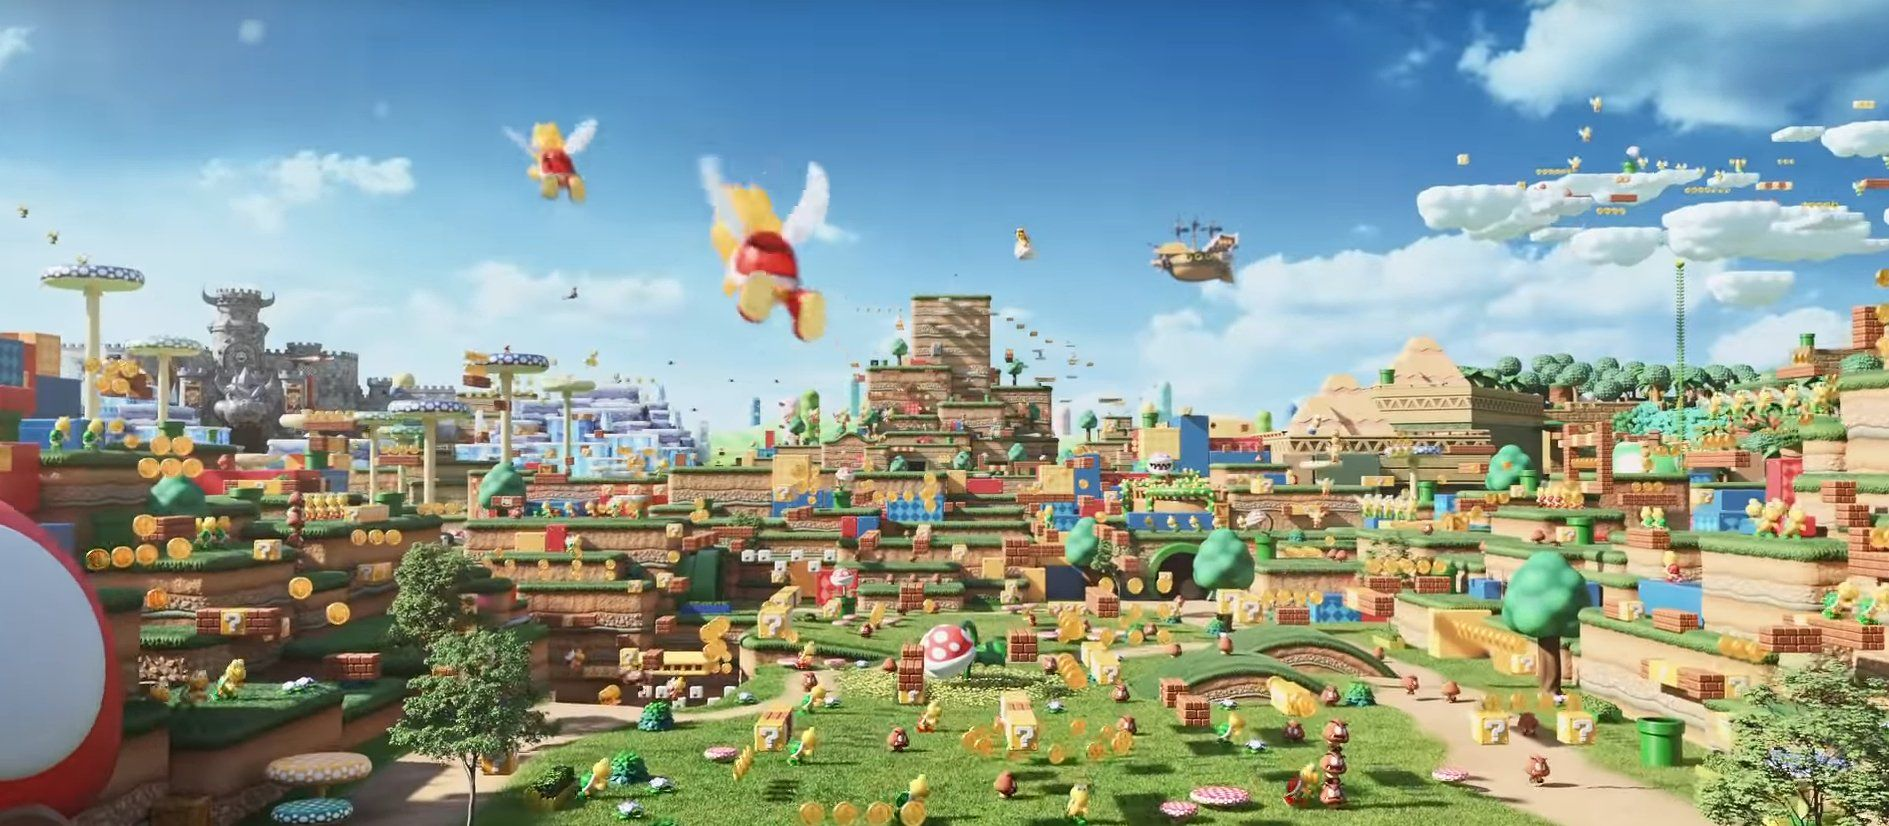 Universal Studios Japan Reveals More Information About Upcoming Super Nintendo World Attraction